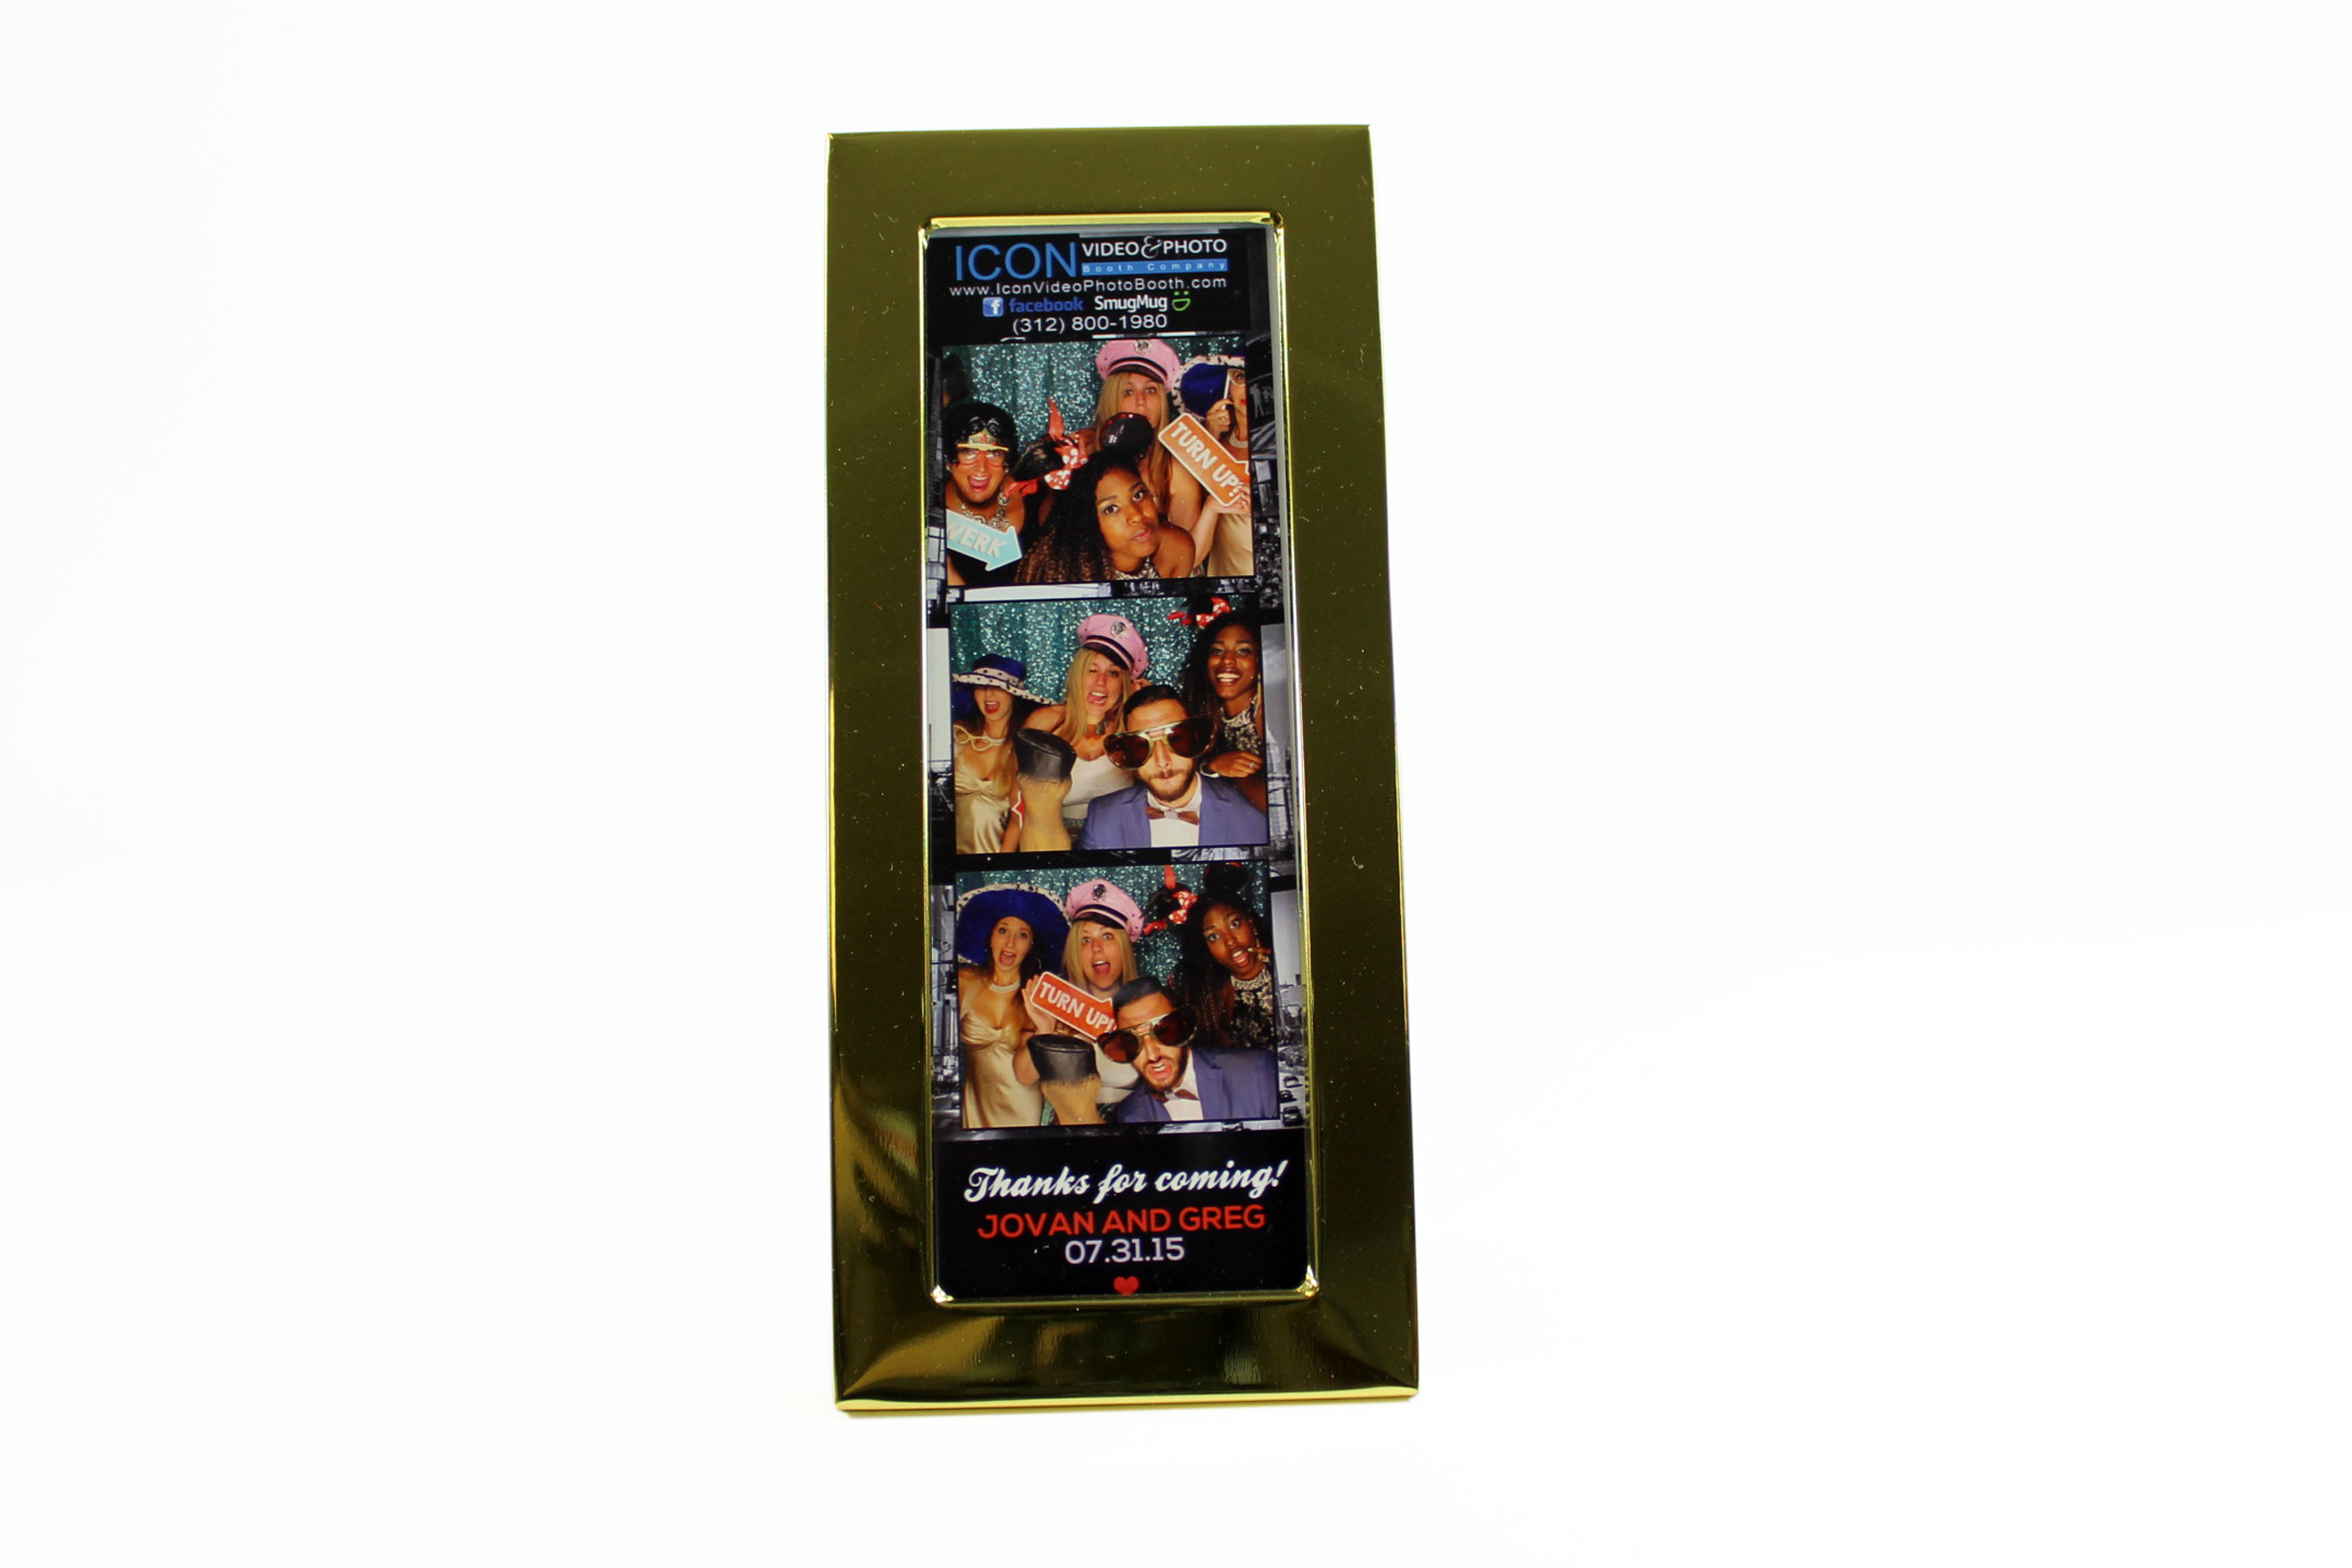 Photo Frame 2x6 Photostrip Frame Gold Icon Video Photo Booth